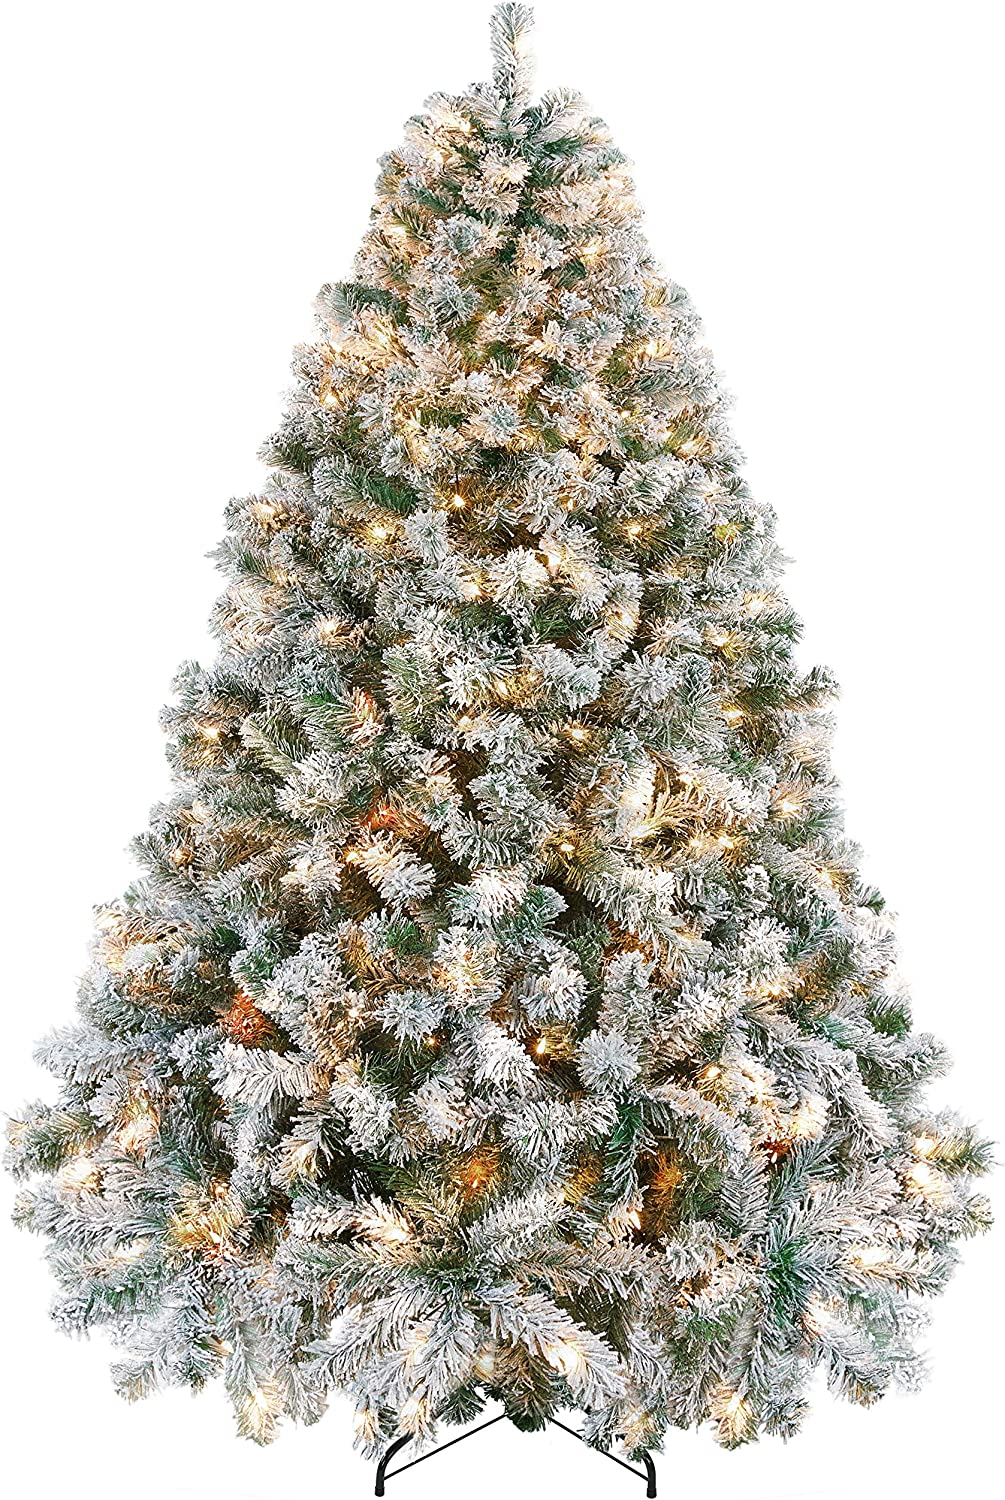 Yaheetech Pre-lit New sales Artificial Christmas Wa half Incandescent Tree with